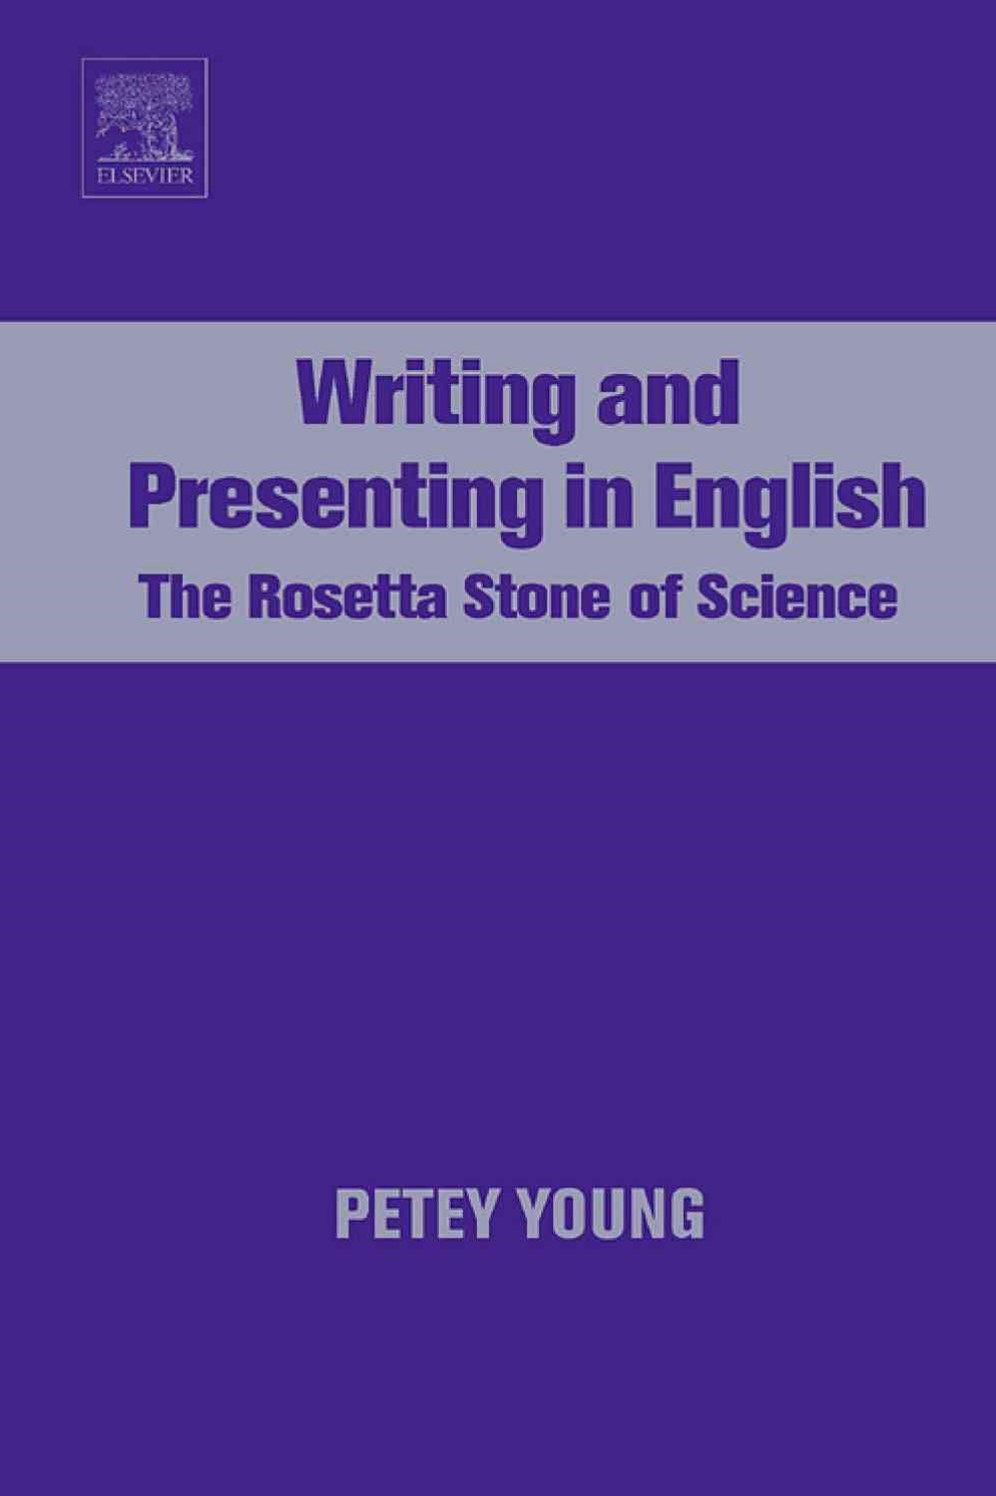 Writing and Presenting in English